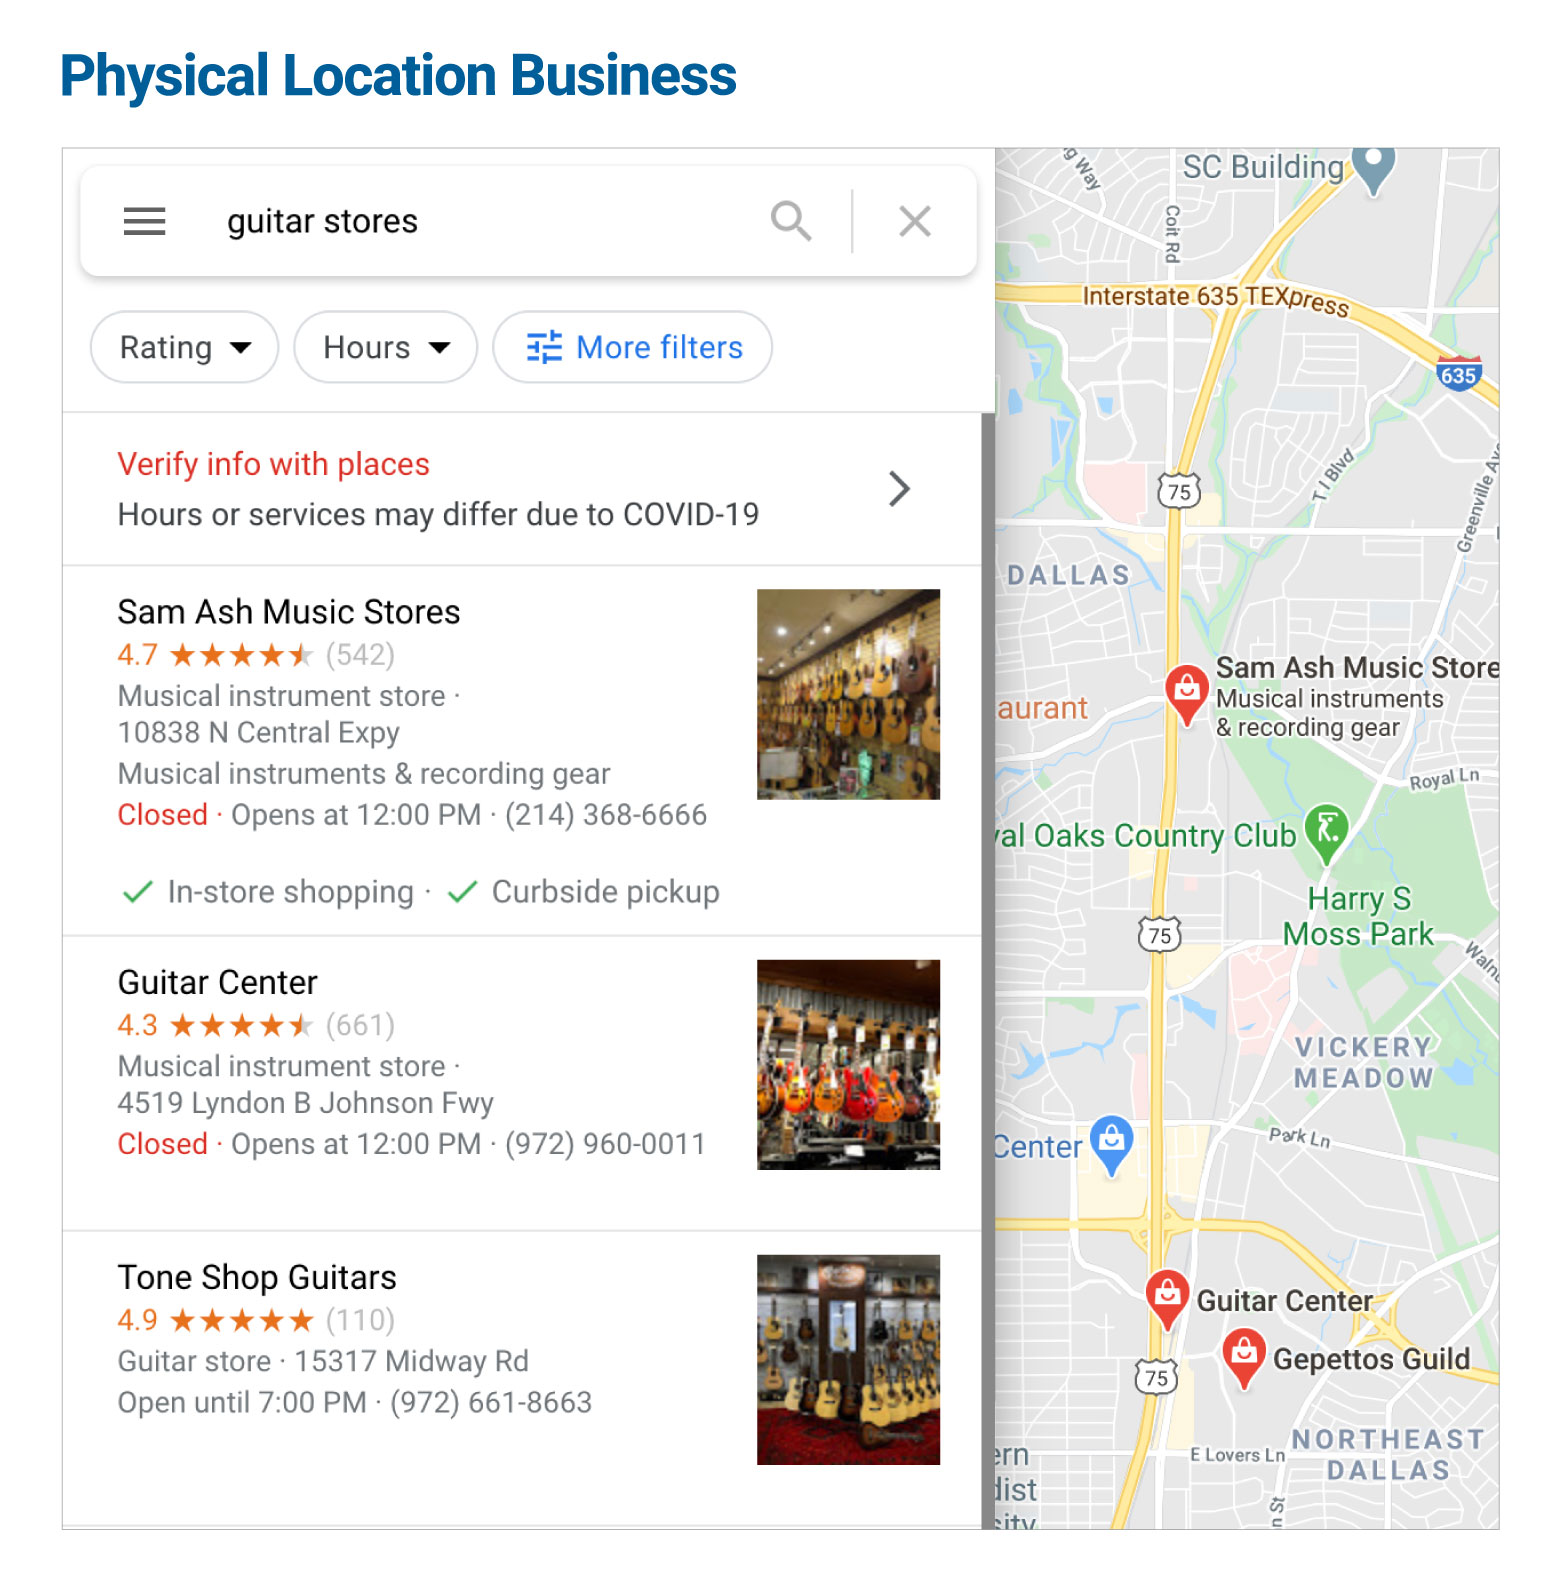 Physical Location Business